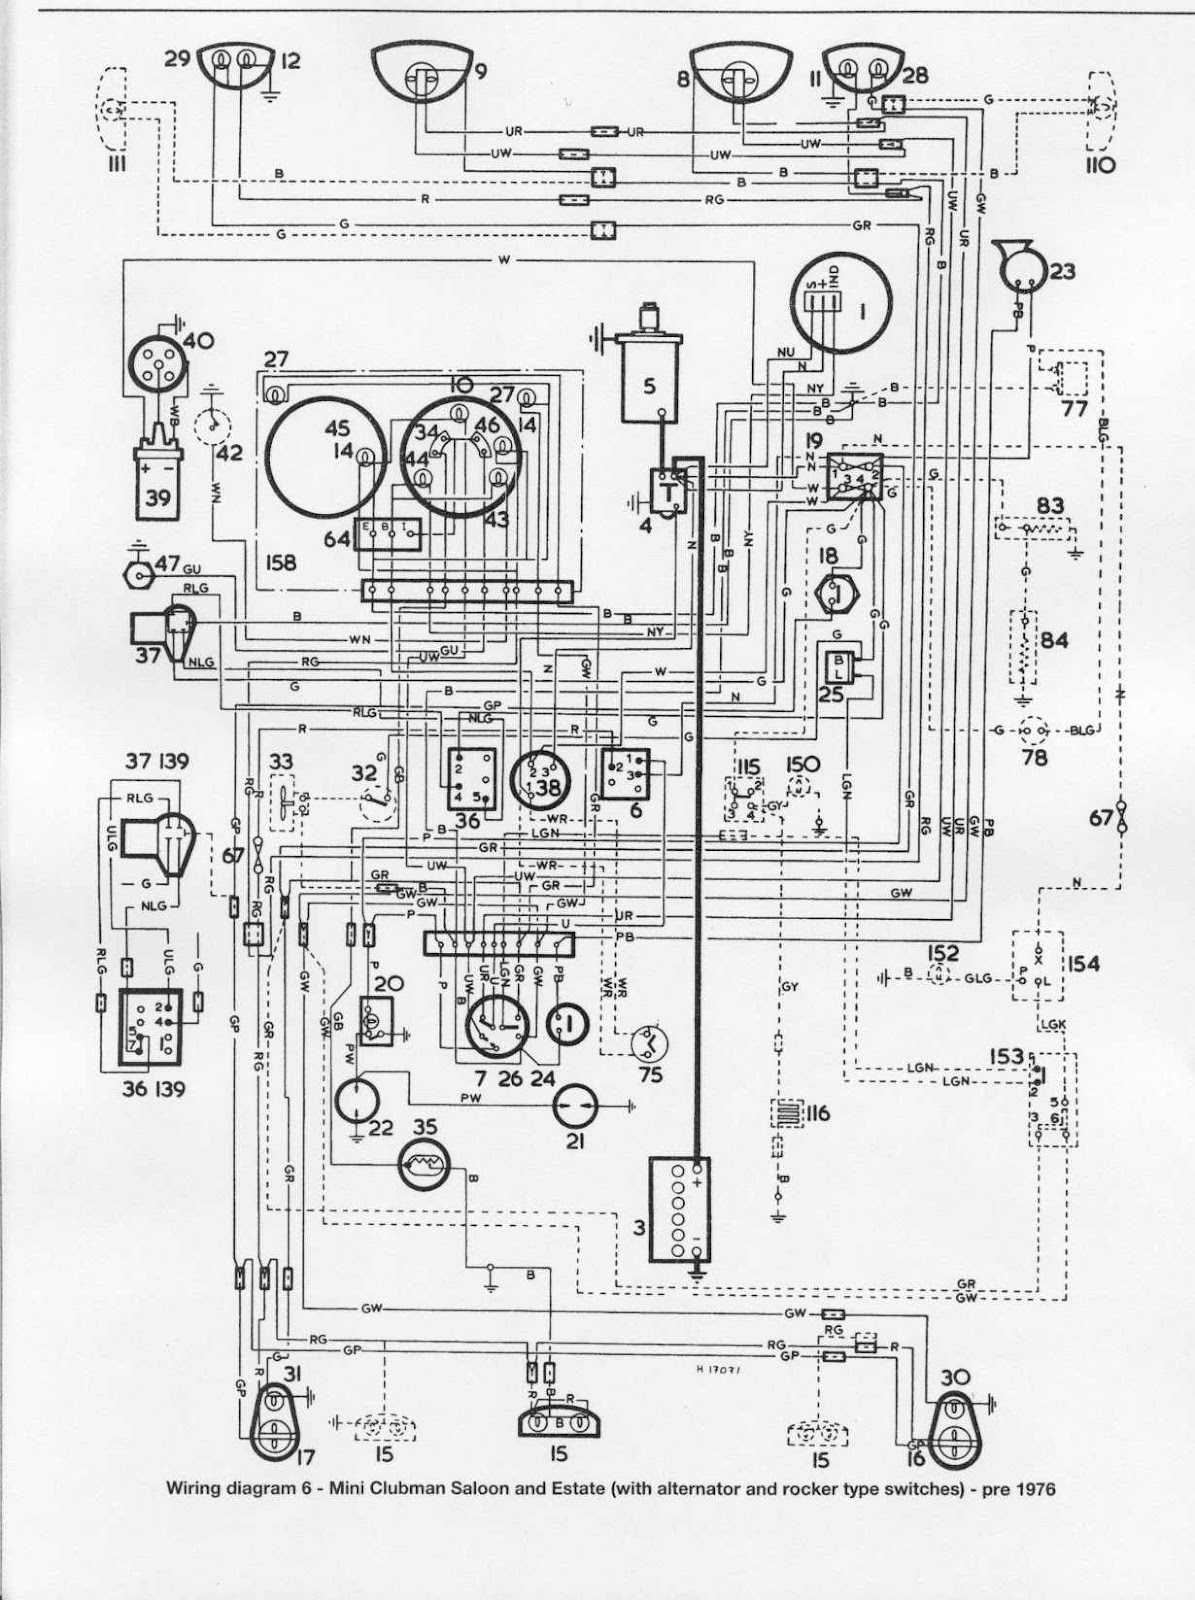 Bmw Mini Cooper Wiring Diagram Dodge Dakota Radio Clubman Saloon And Estate 1976 Electrical